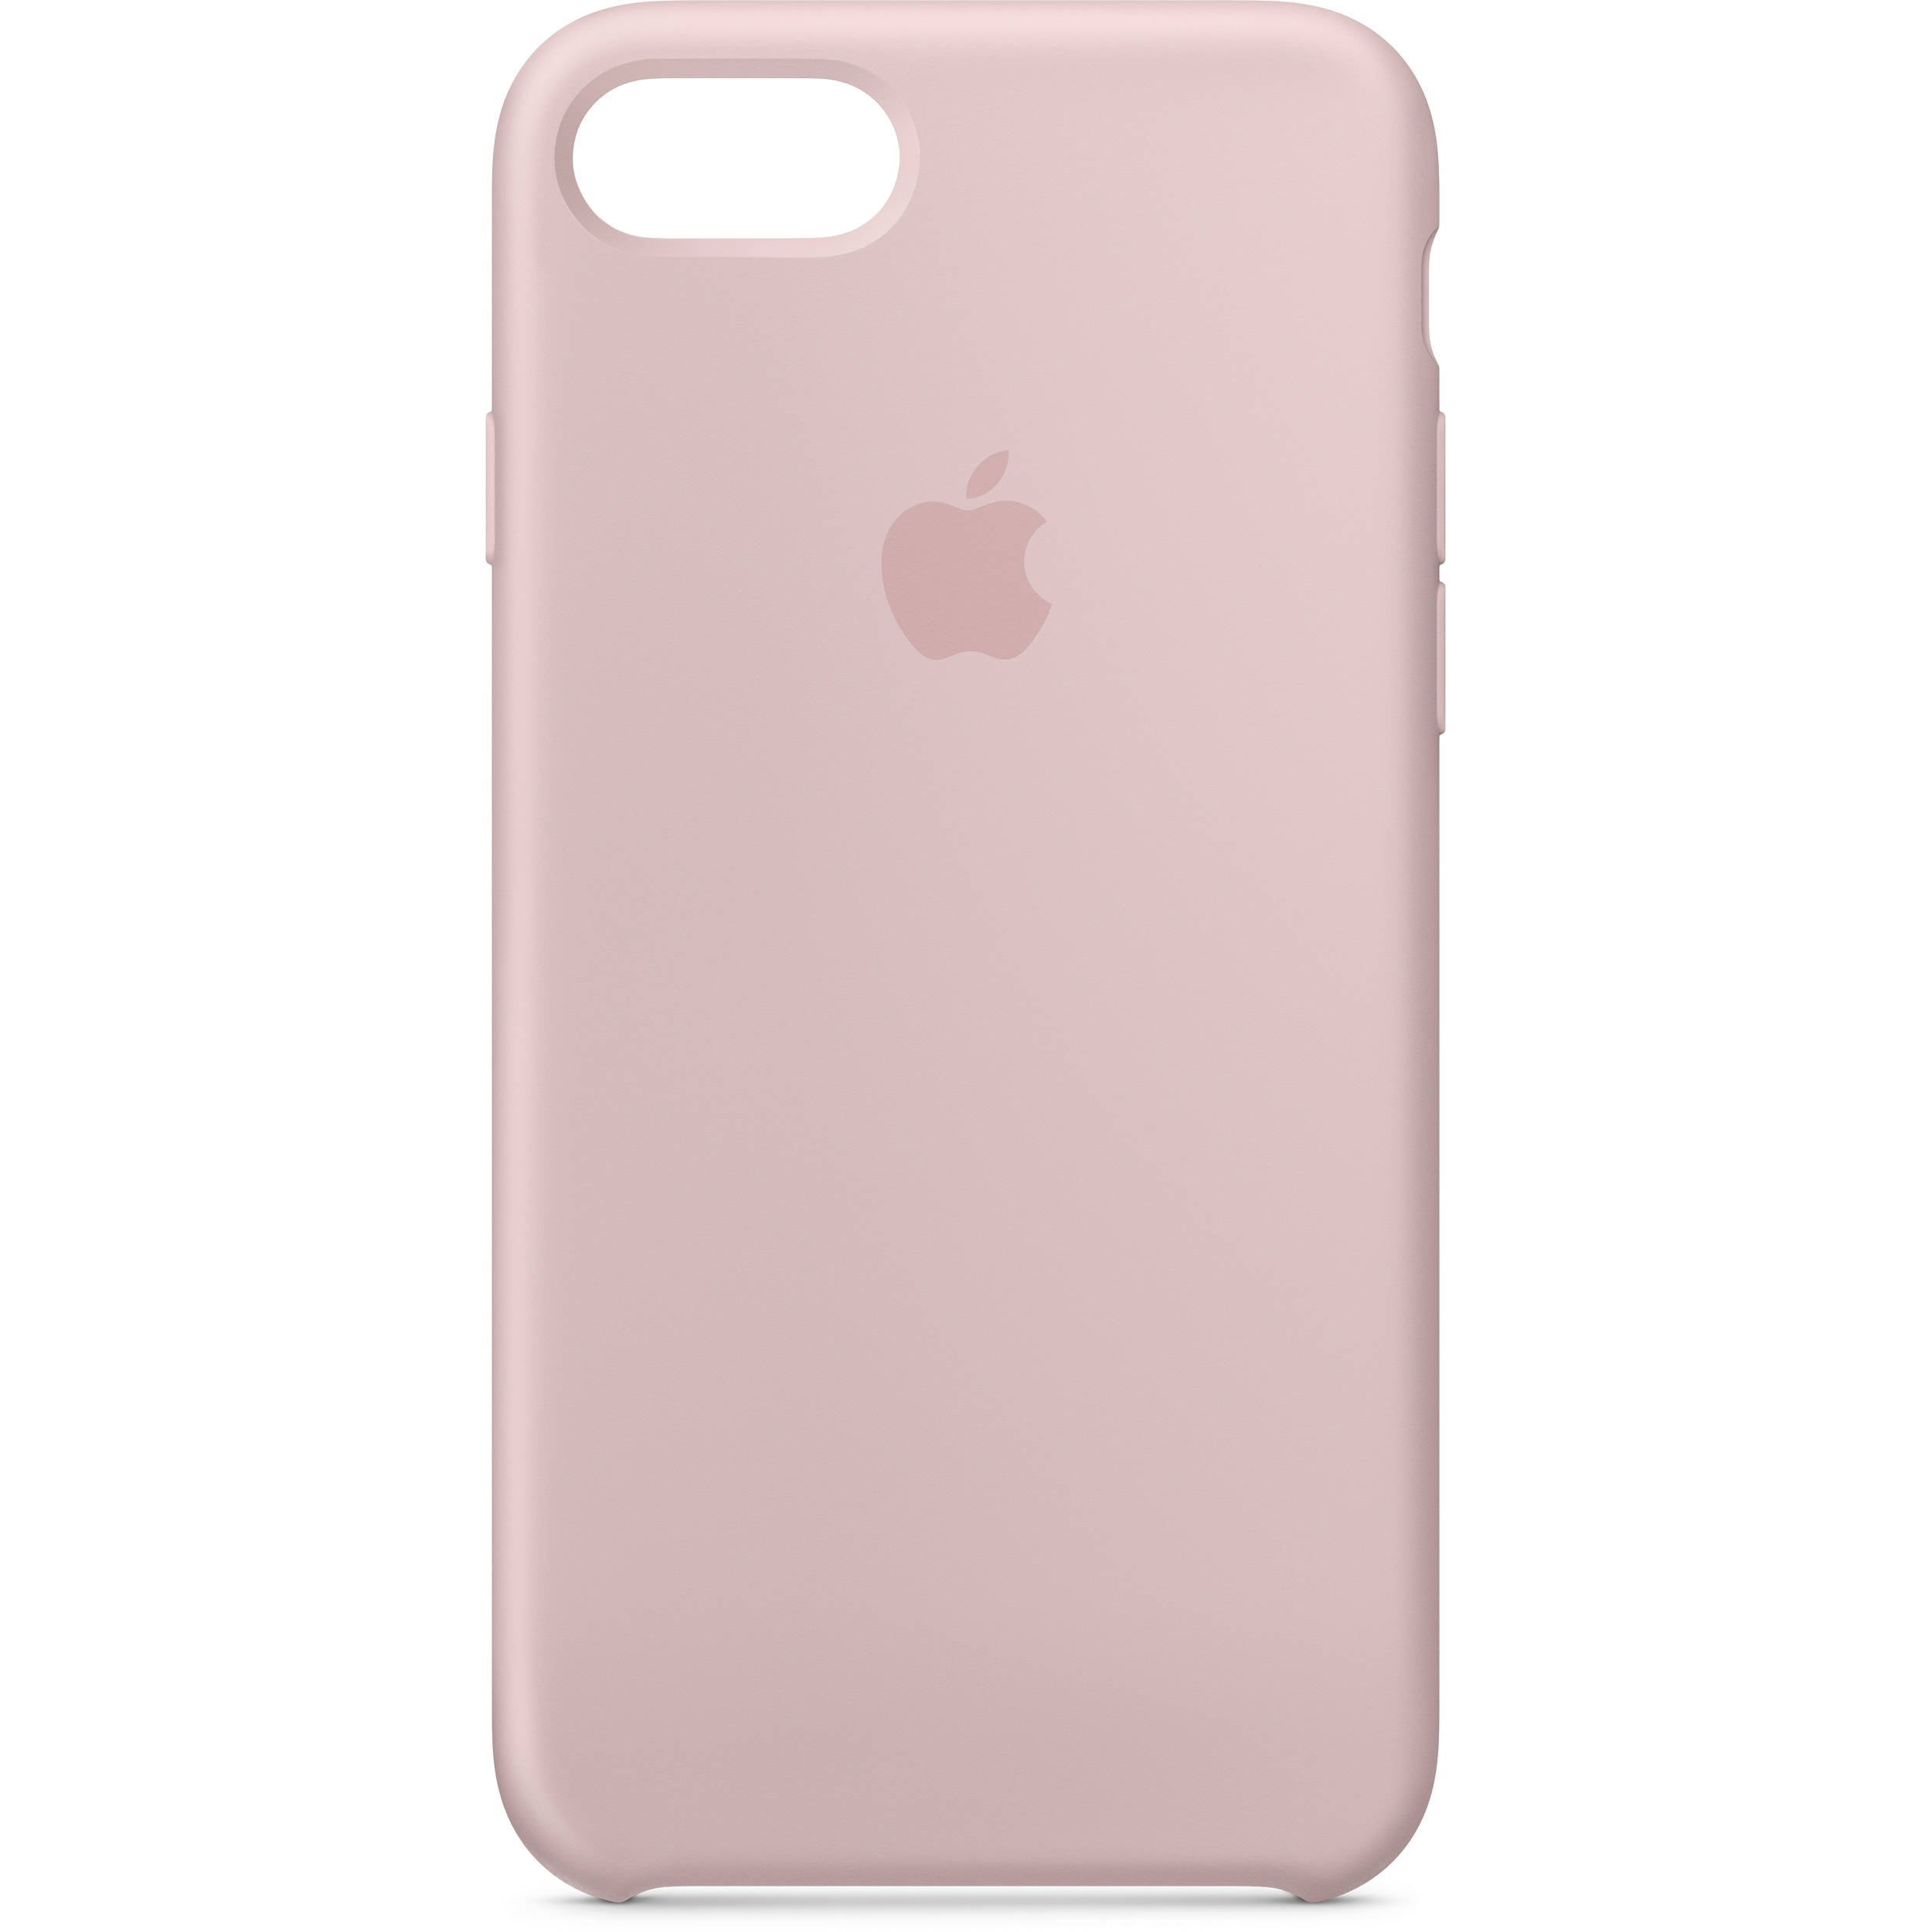 apple iphone 8 case pink